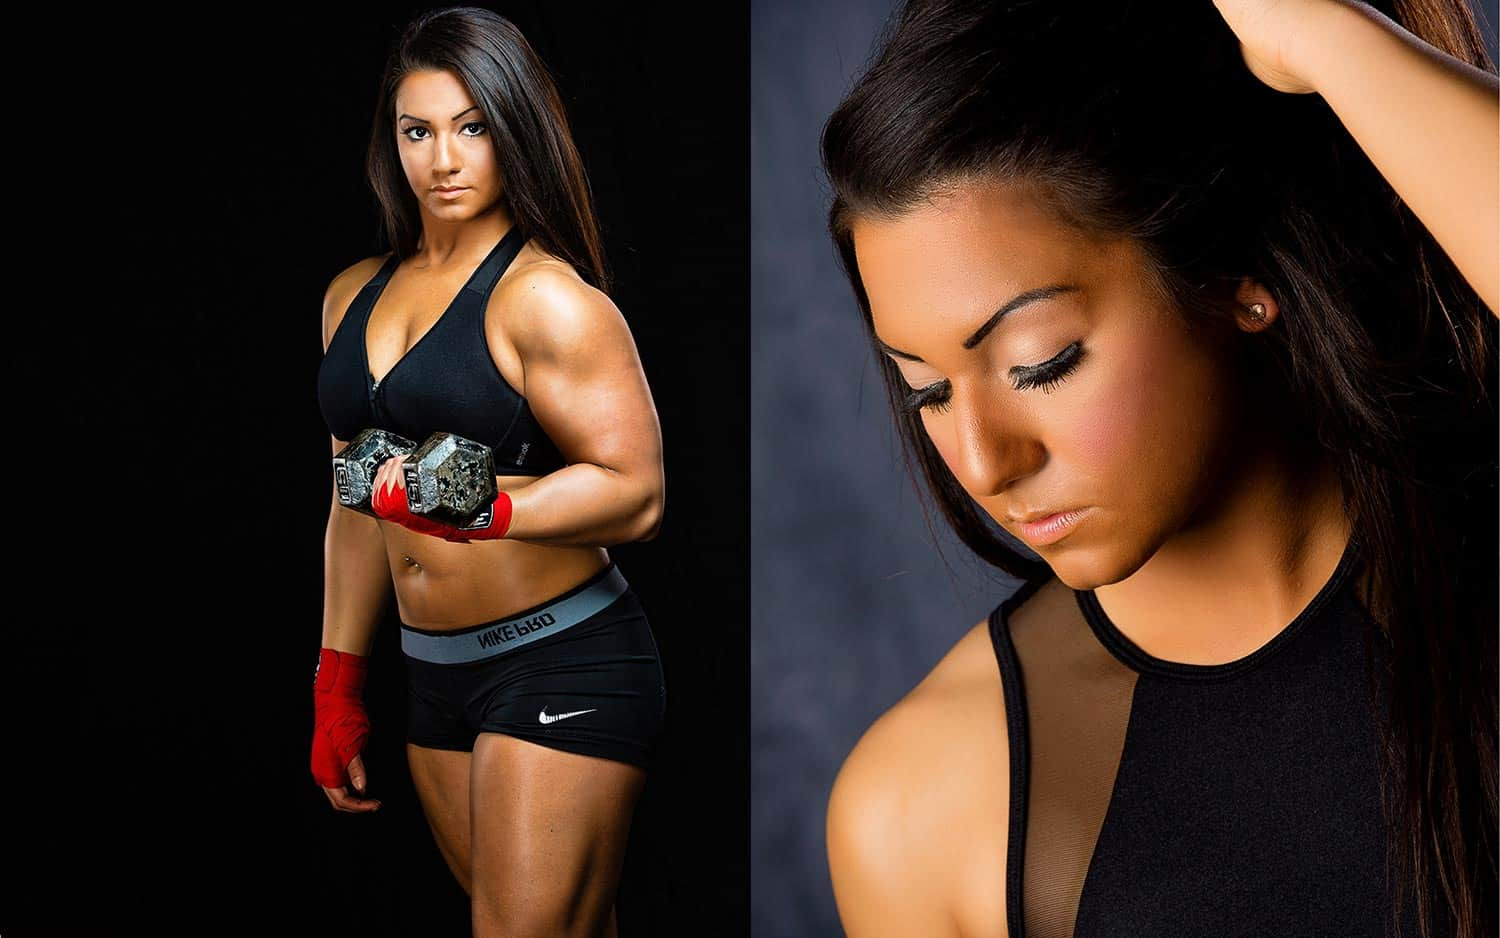 Fitness Photographer in Crystal Lake Illinois